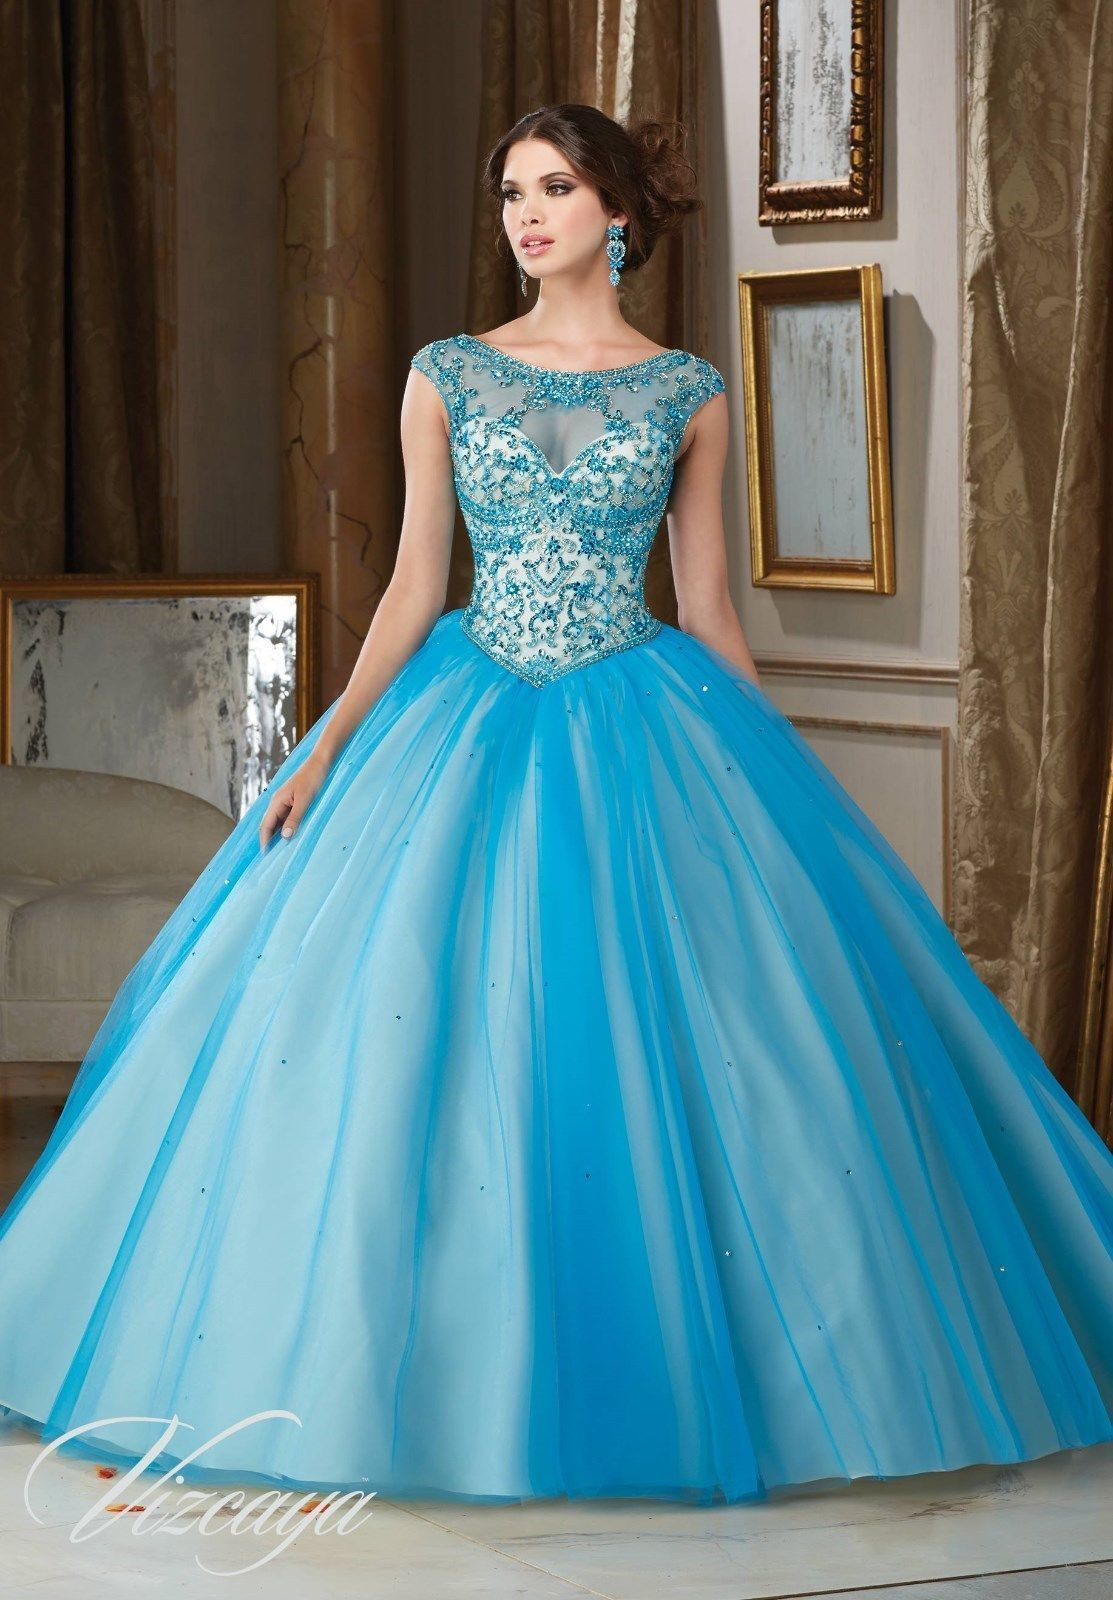 NEW Quinceanera Dress Party Evening Wedding Gown Custom Ball Formal ...